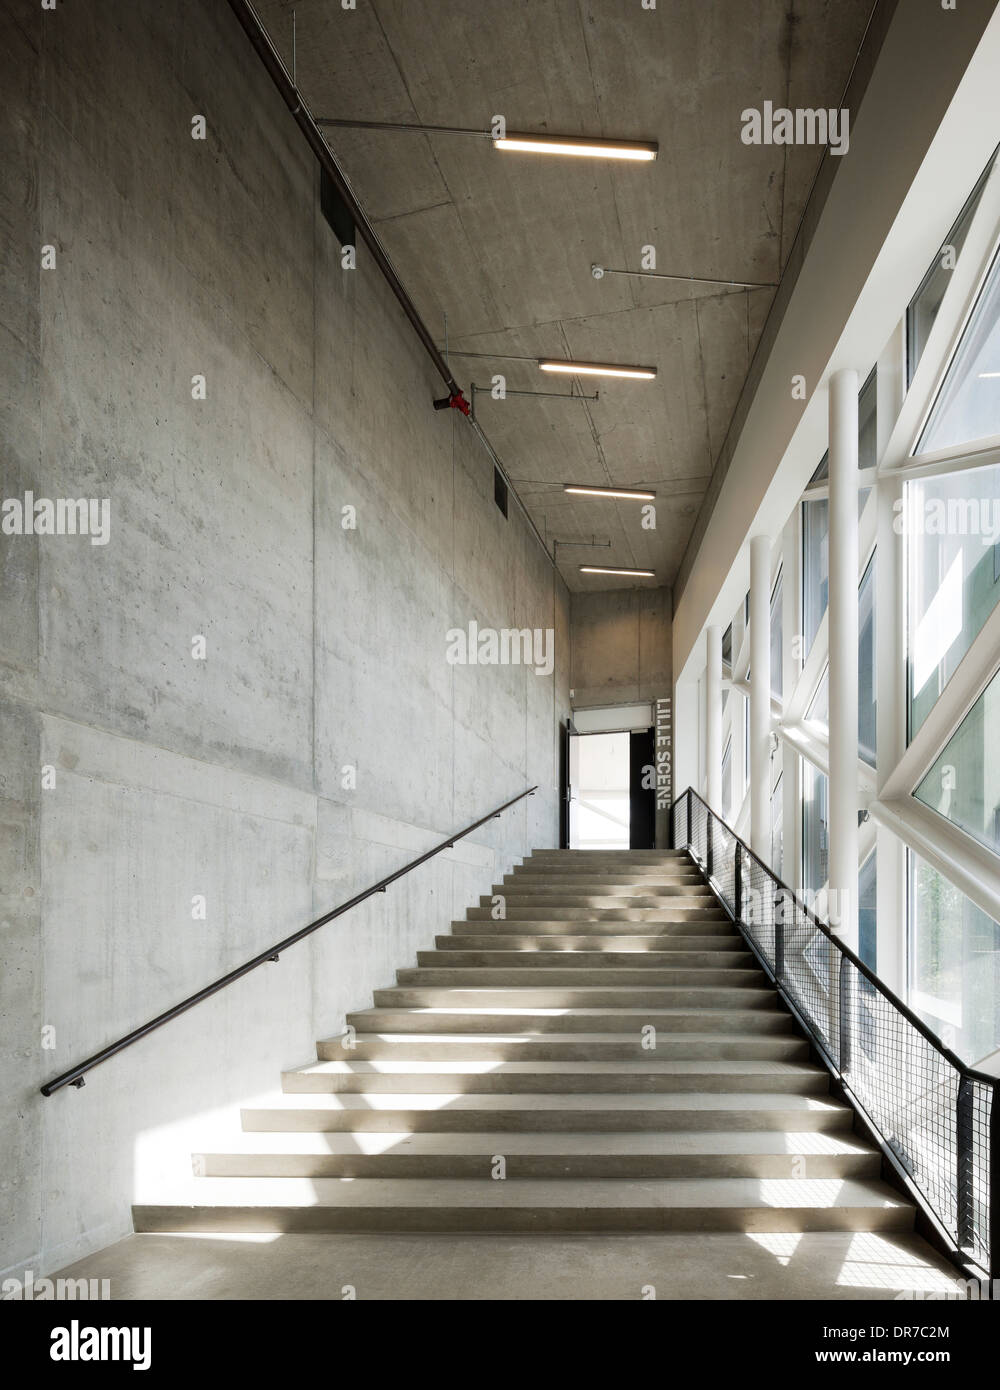 Interior view of The Culture Yard, Concrete stairs, Elsinore, Denmark - Stock Image